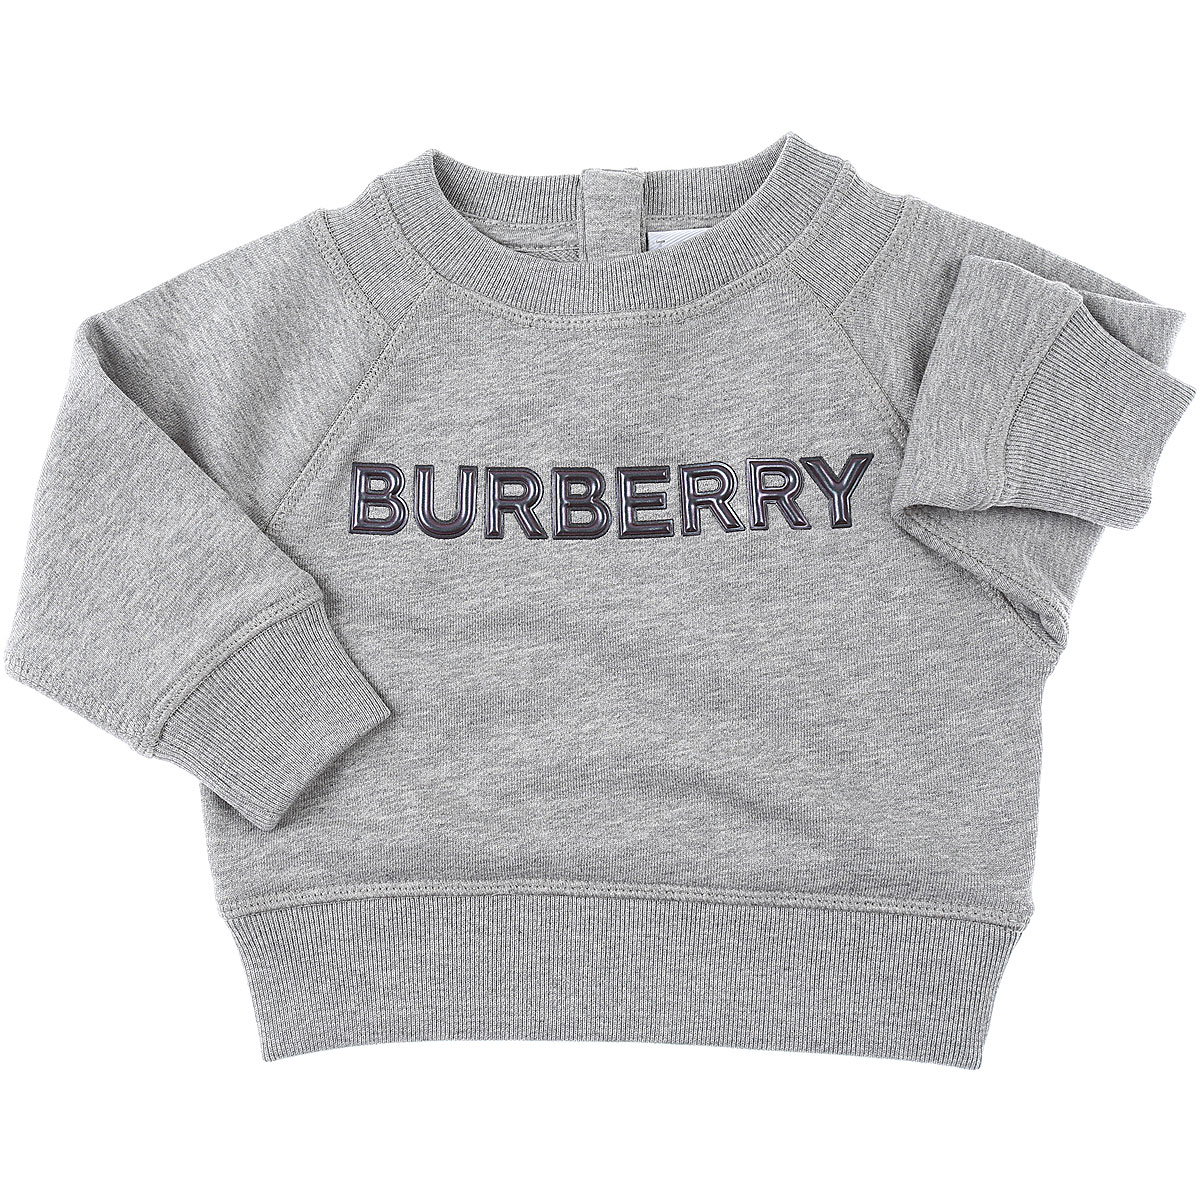 Burberry Baby Sweatshirts & Hoodies for Boys On Sale in Outlet, Grey, Cotton, 2019, 12 M 2Y